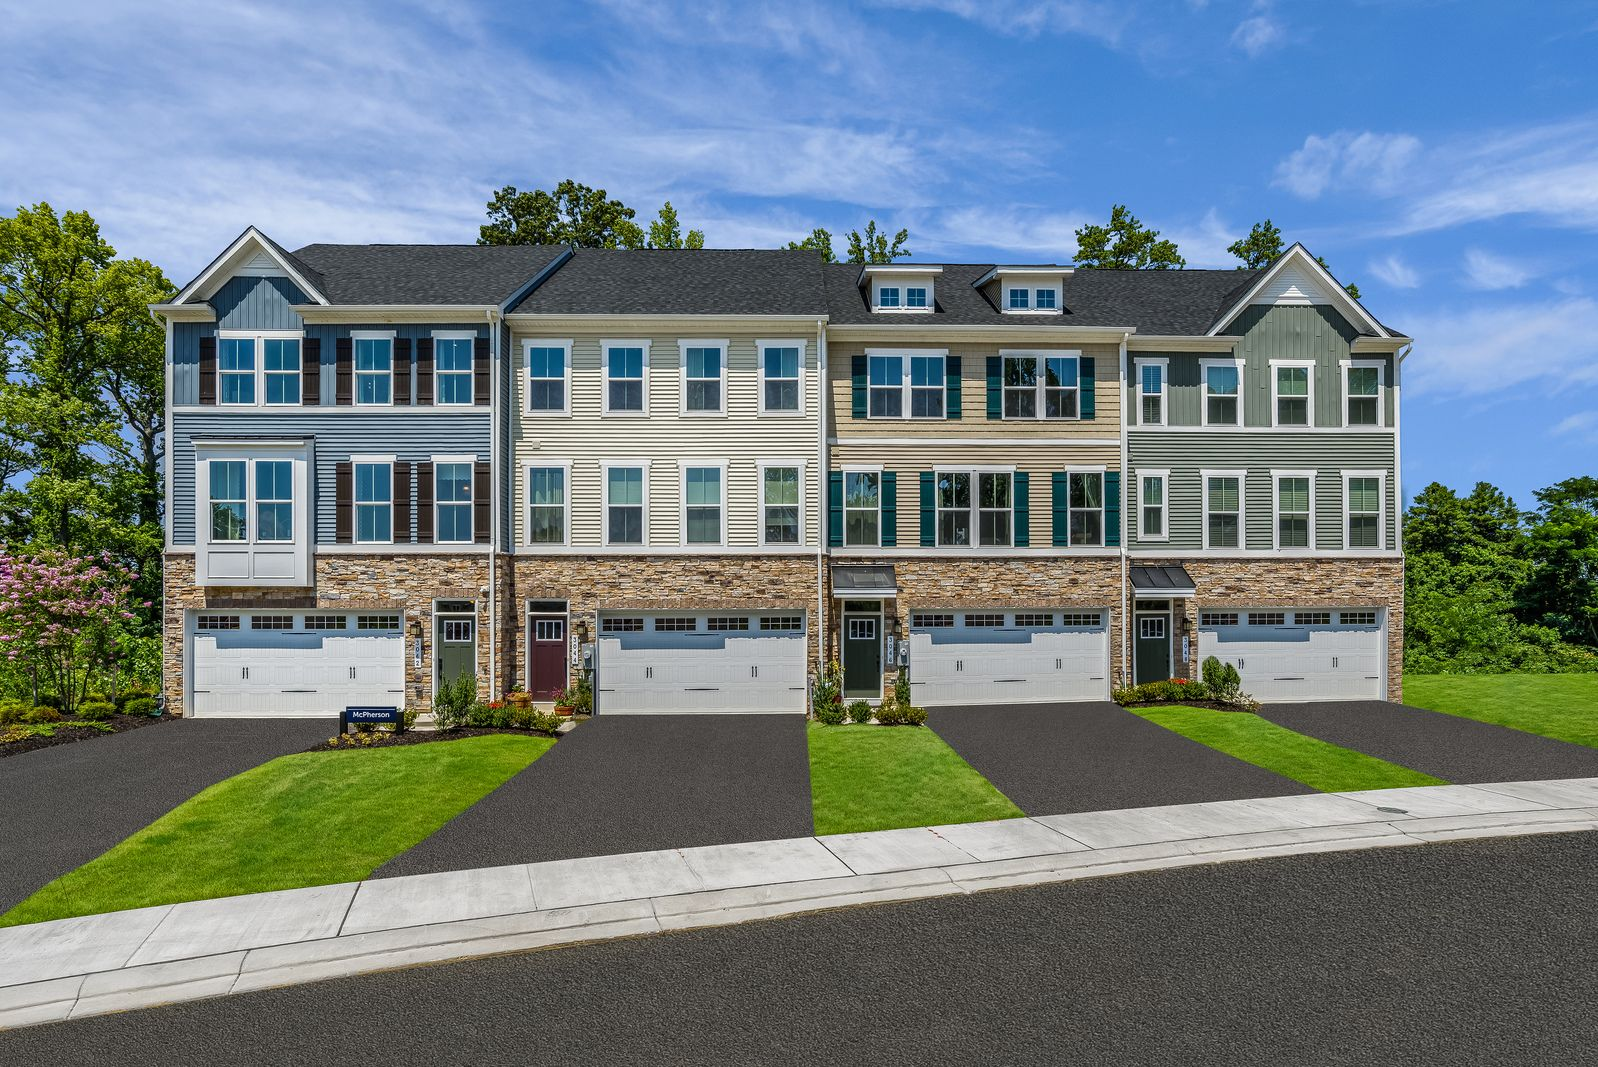 Welcome Home to Seneca Trails Townhomes in Jackson Township:The only new townhomes in Jackson Township just off Rt. 19, 2 miles to I-79, & minutes from Cranberry shopping & dining. Only 30 townhomes.Click here to join the VIP List.